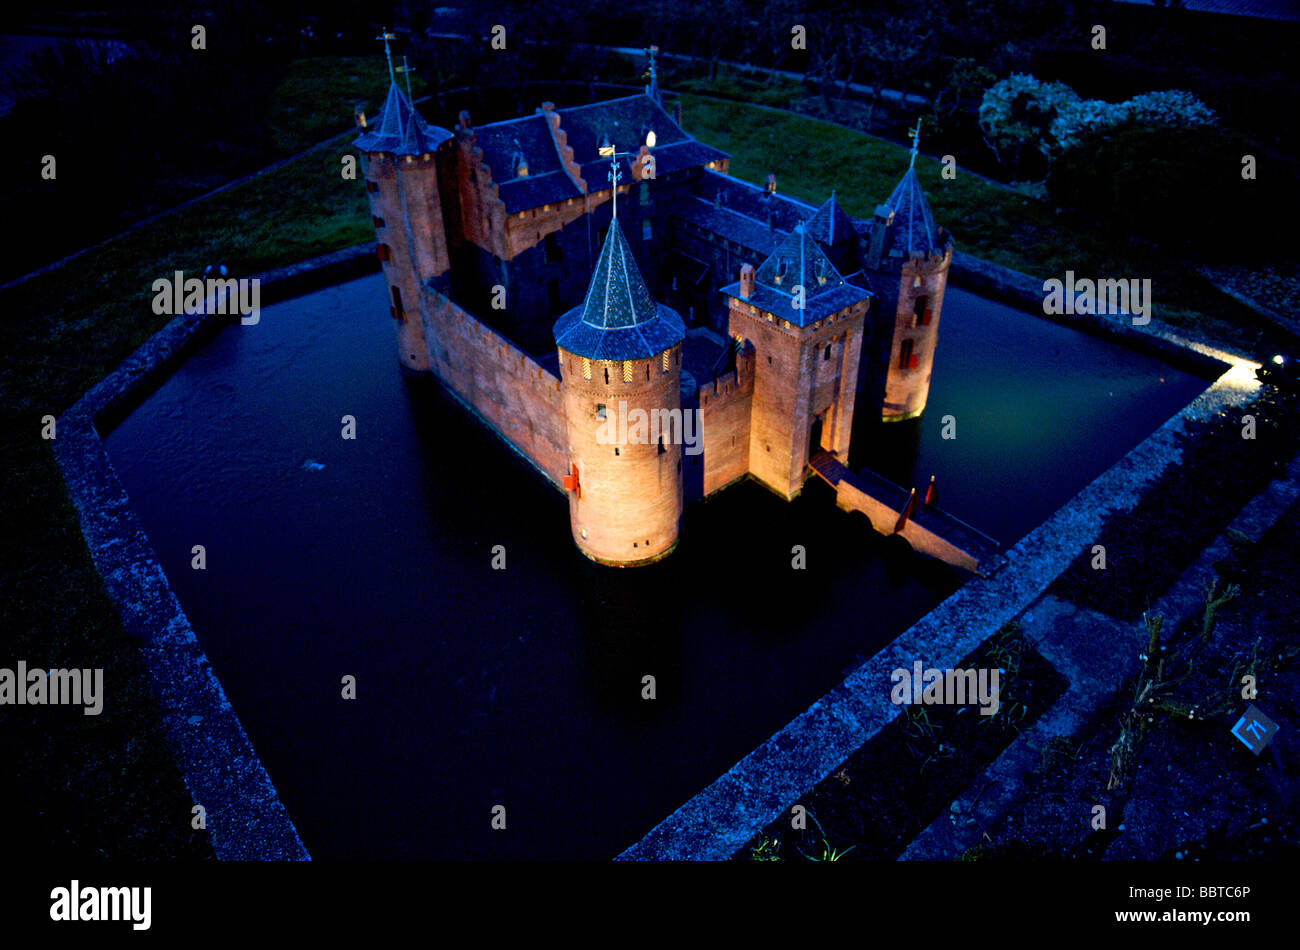 The Muiderslot as replicated in Madurodam - Stock Image